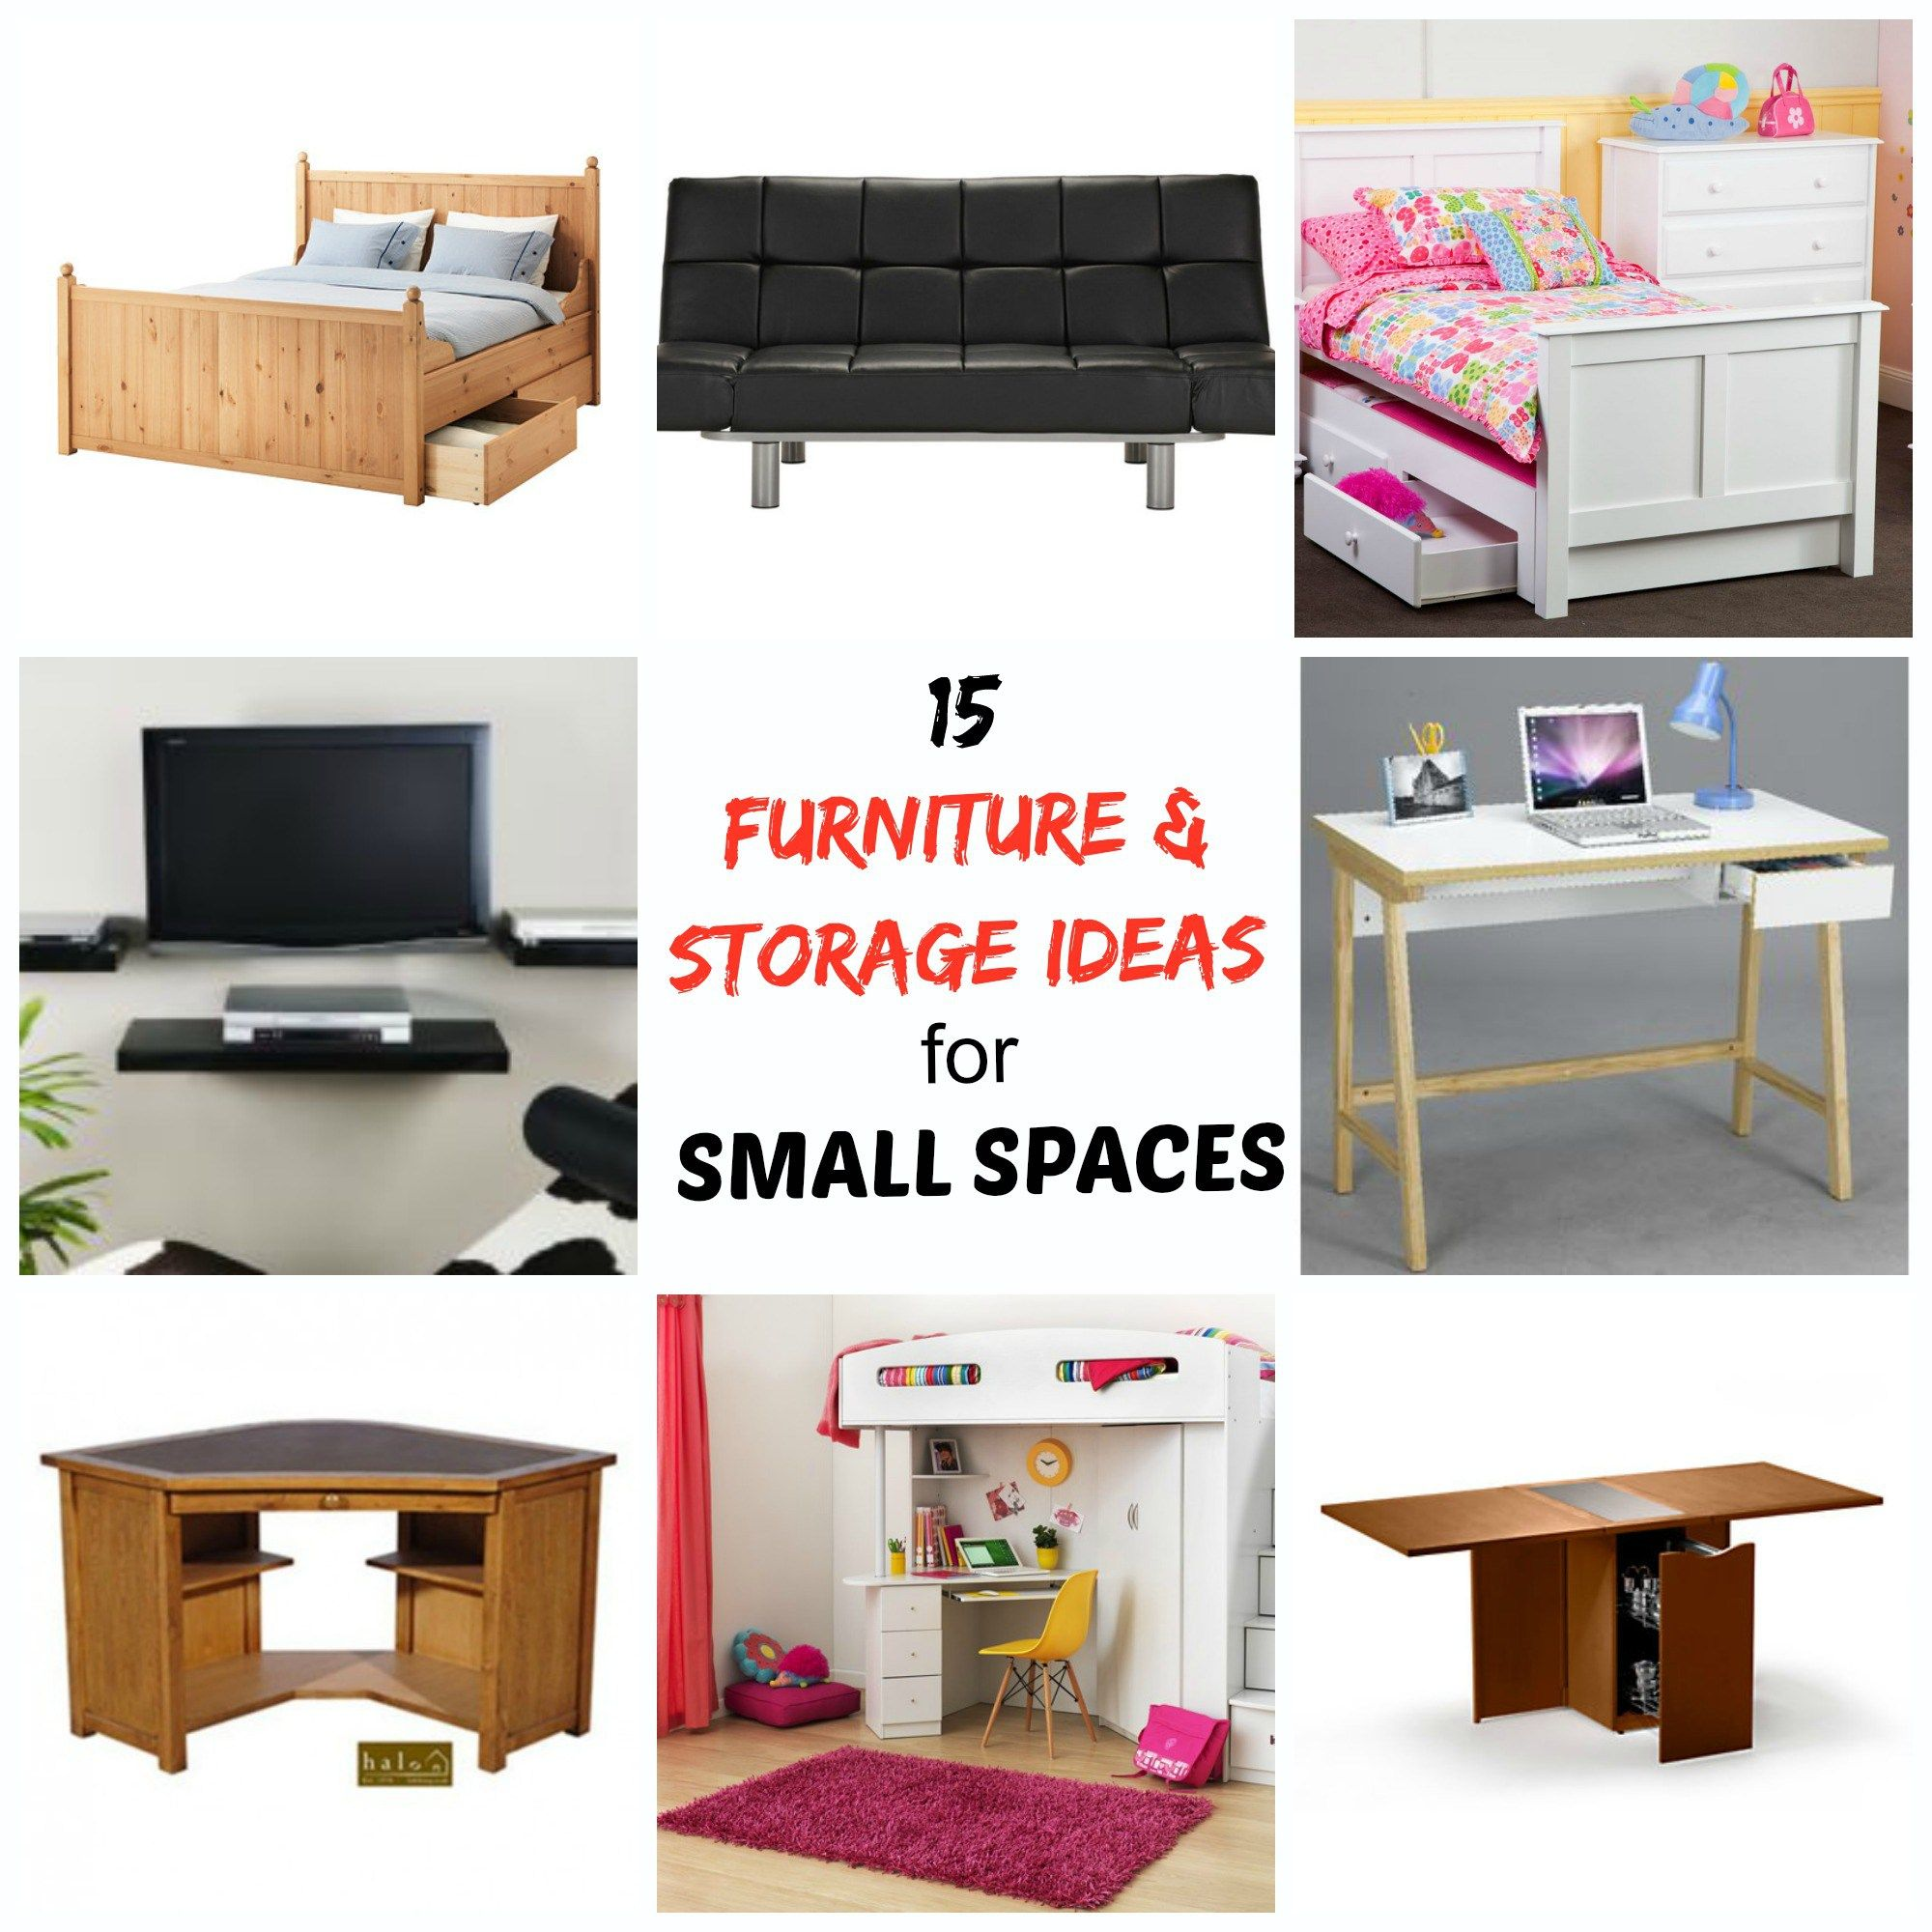 multipurpose furniture for small spaces serves multiple purpose looking for furniture small spaces or some extra storage inspiration check out these 15 great ideas to inspire your home decorating furniture storage ideas for small spaces wood table diy